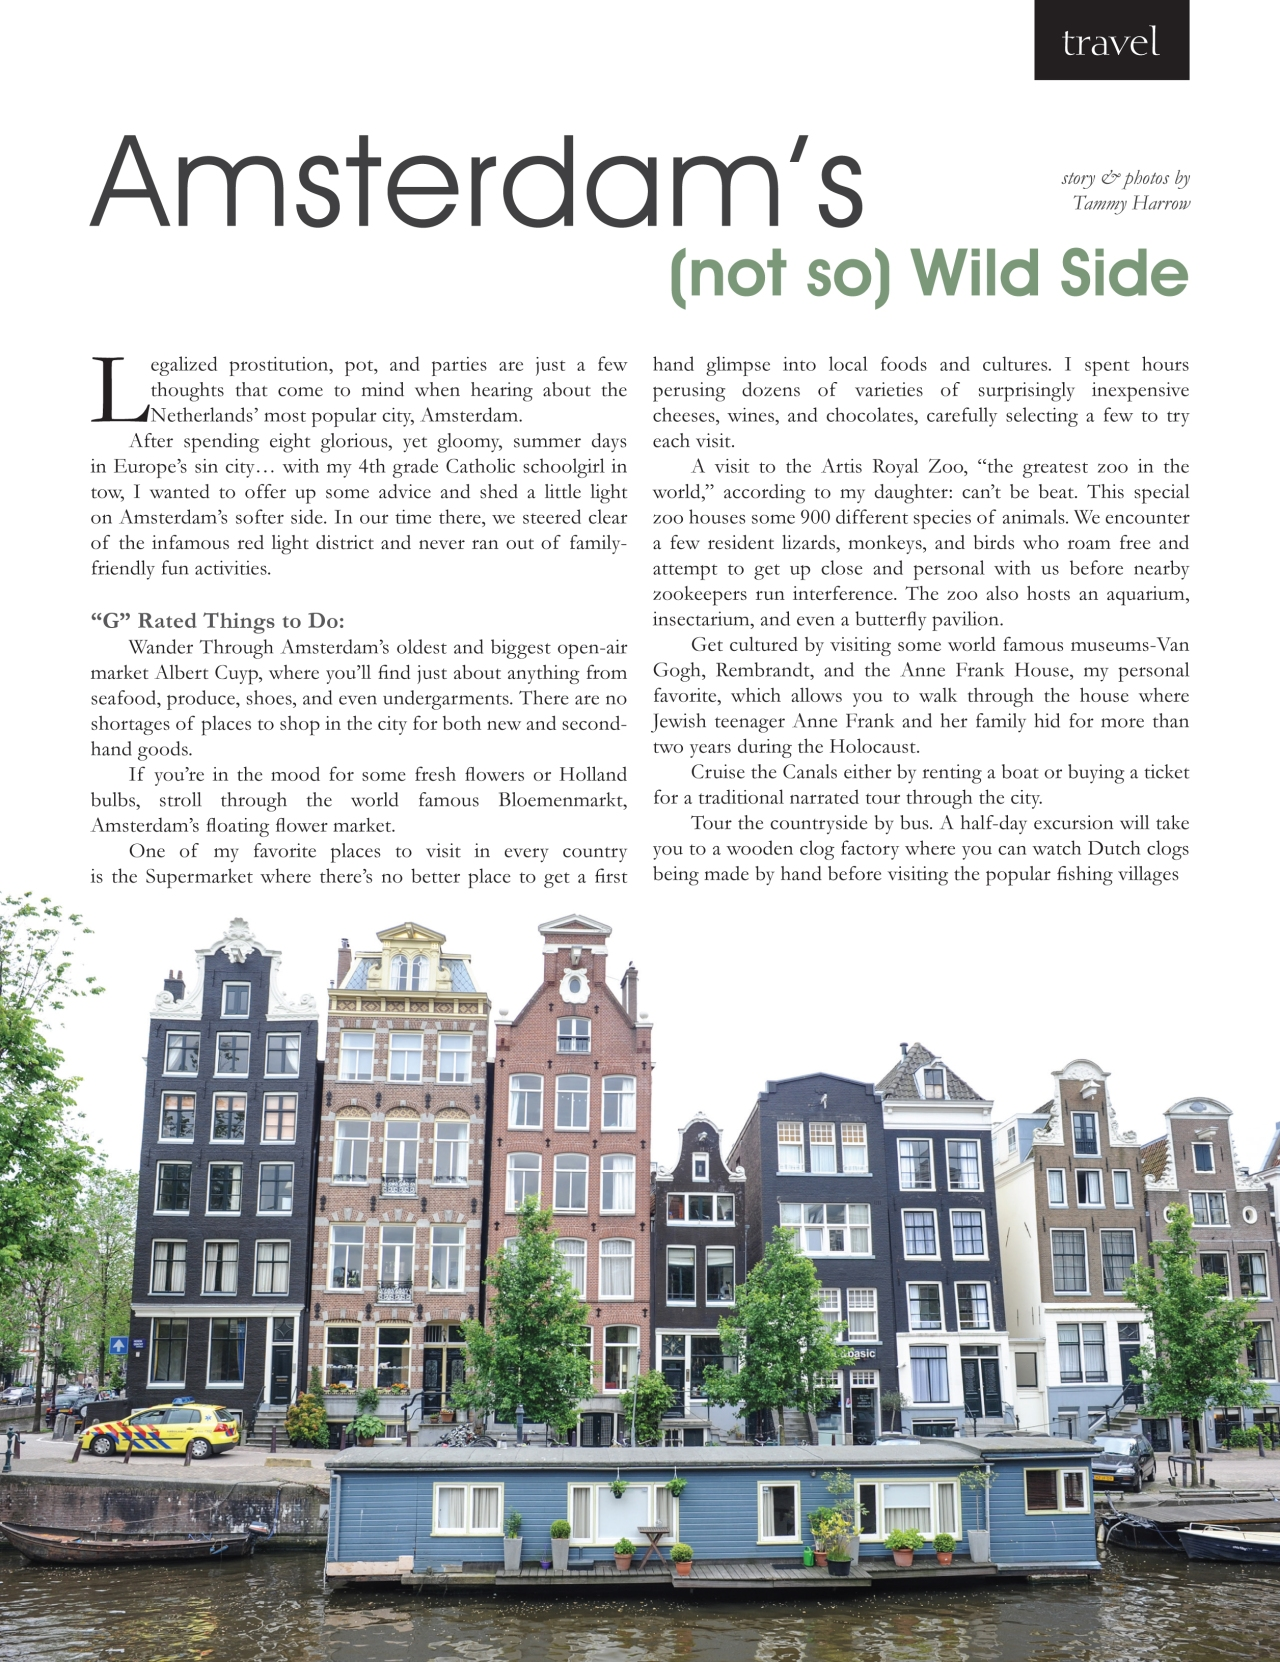 Amsterdam's not so Wild Side